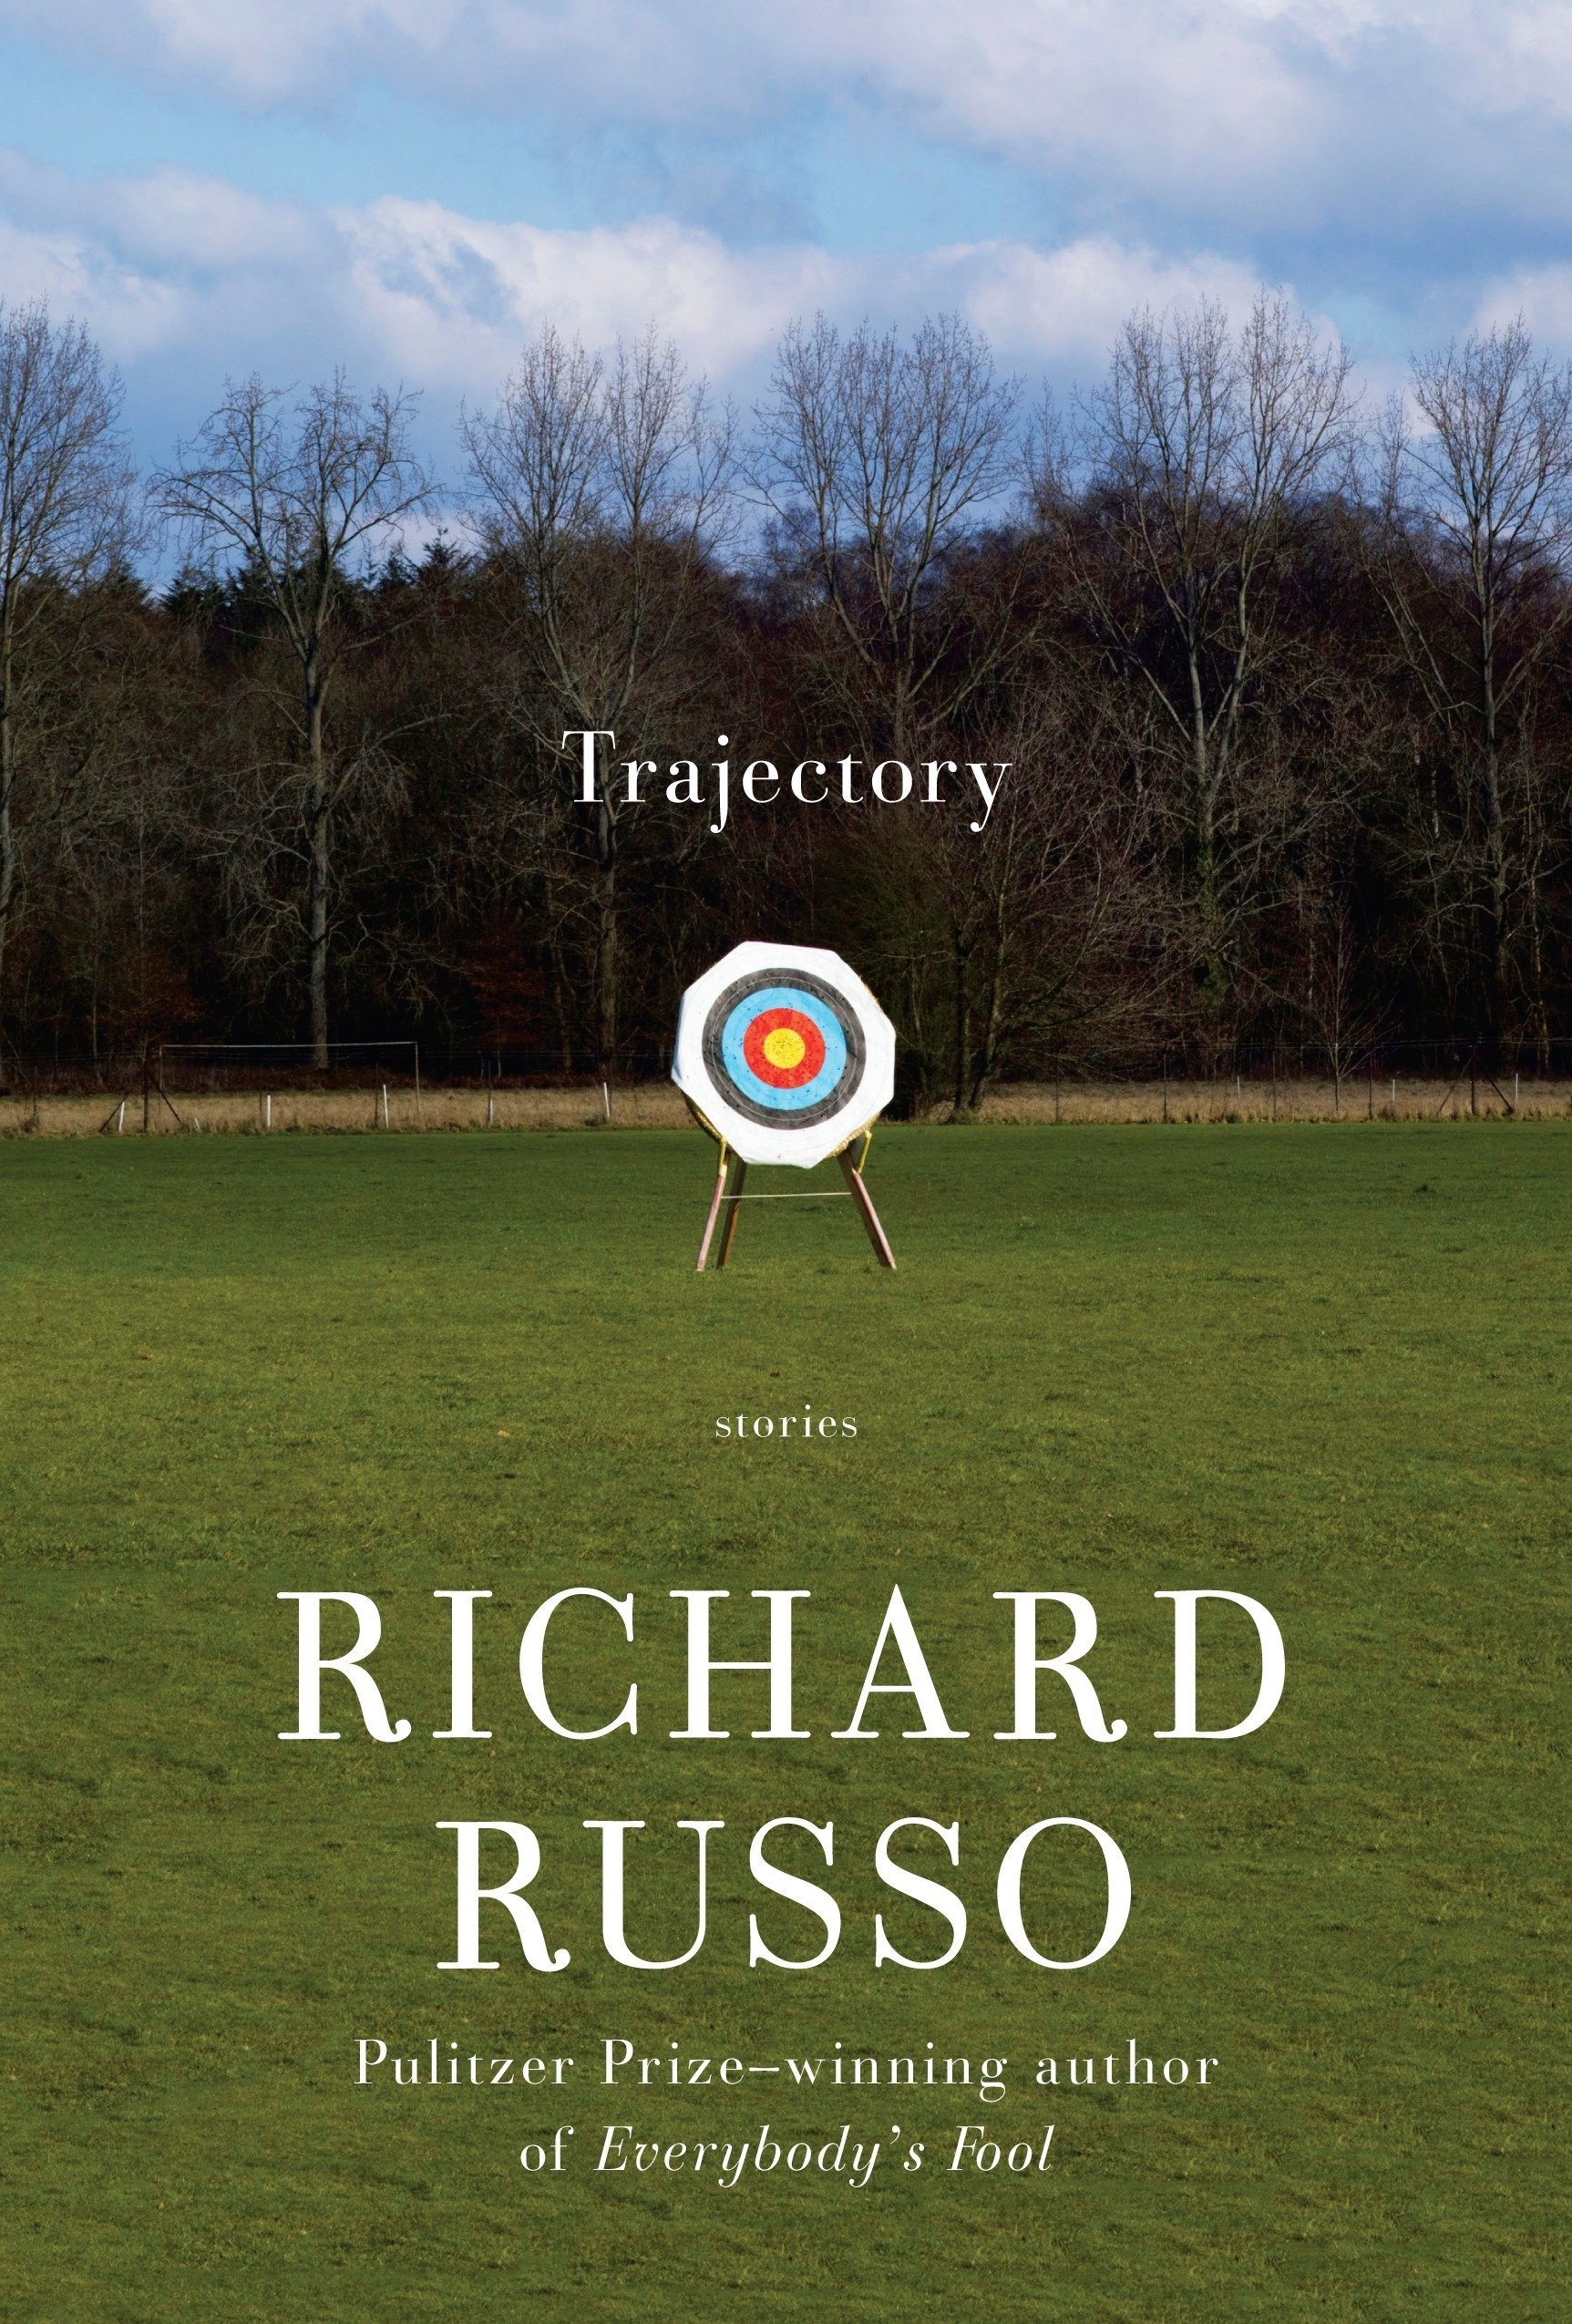 American pdf short stories best russo the richard